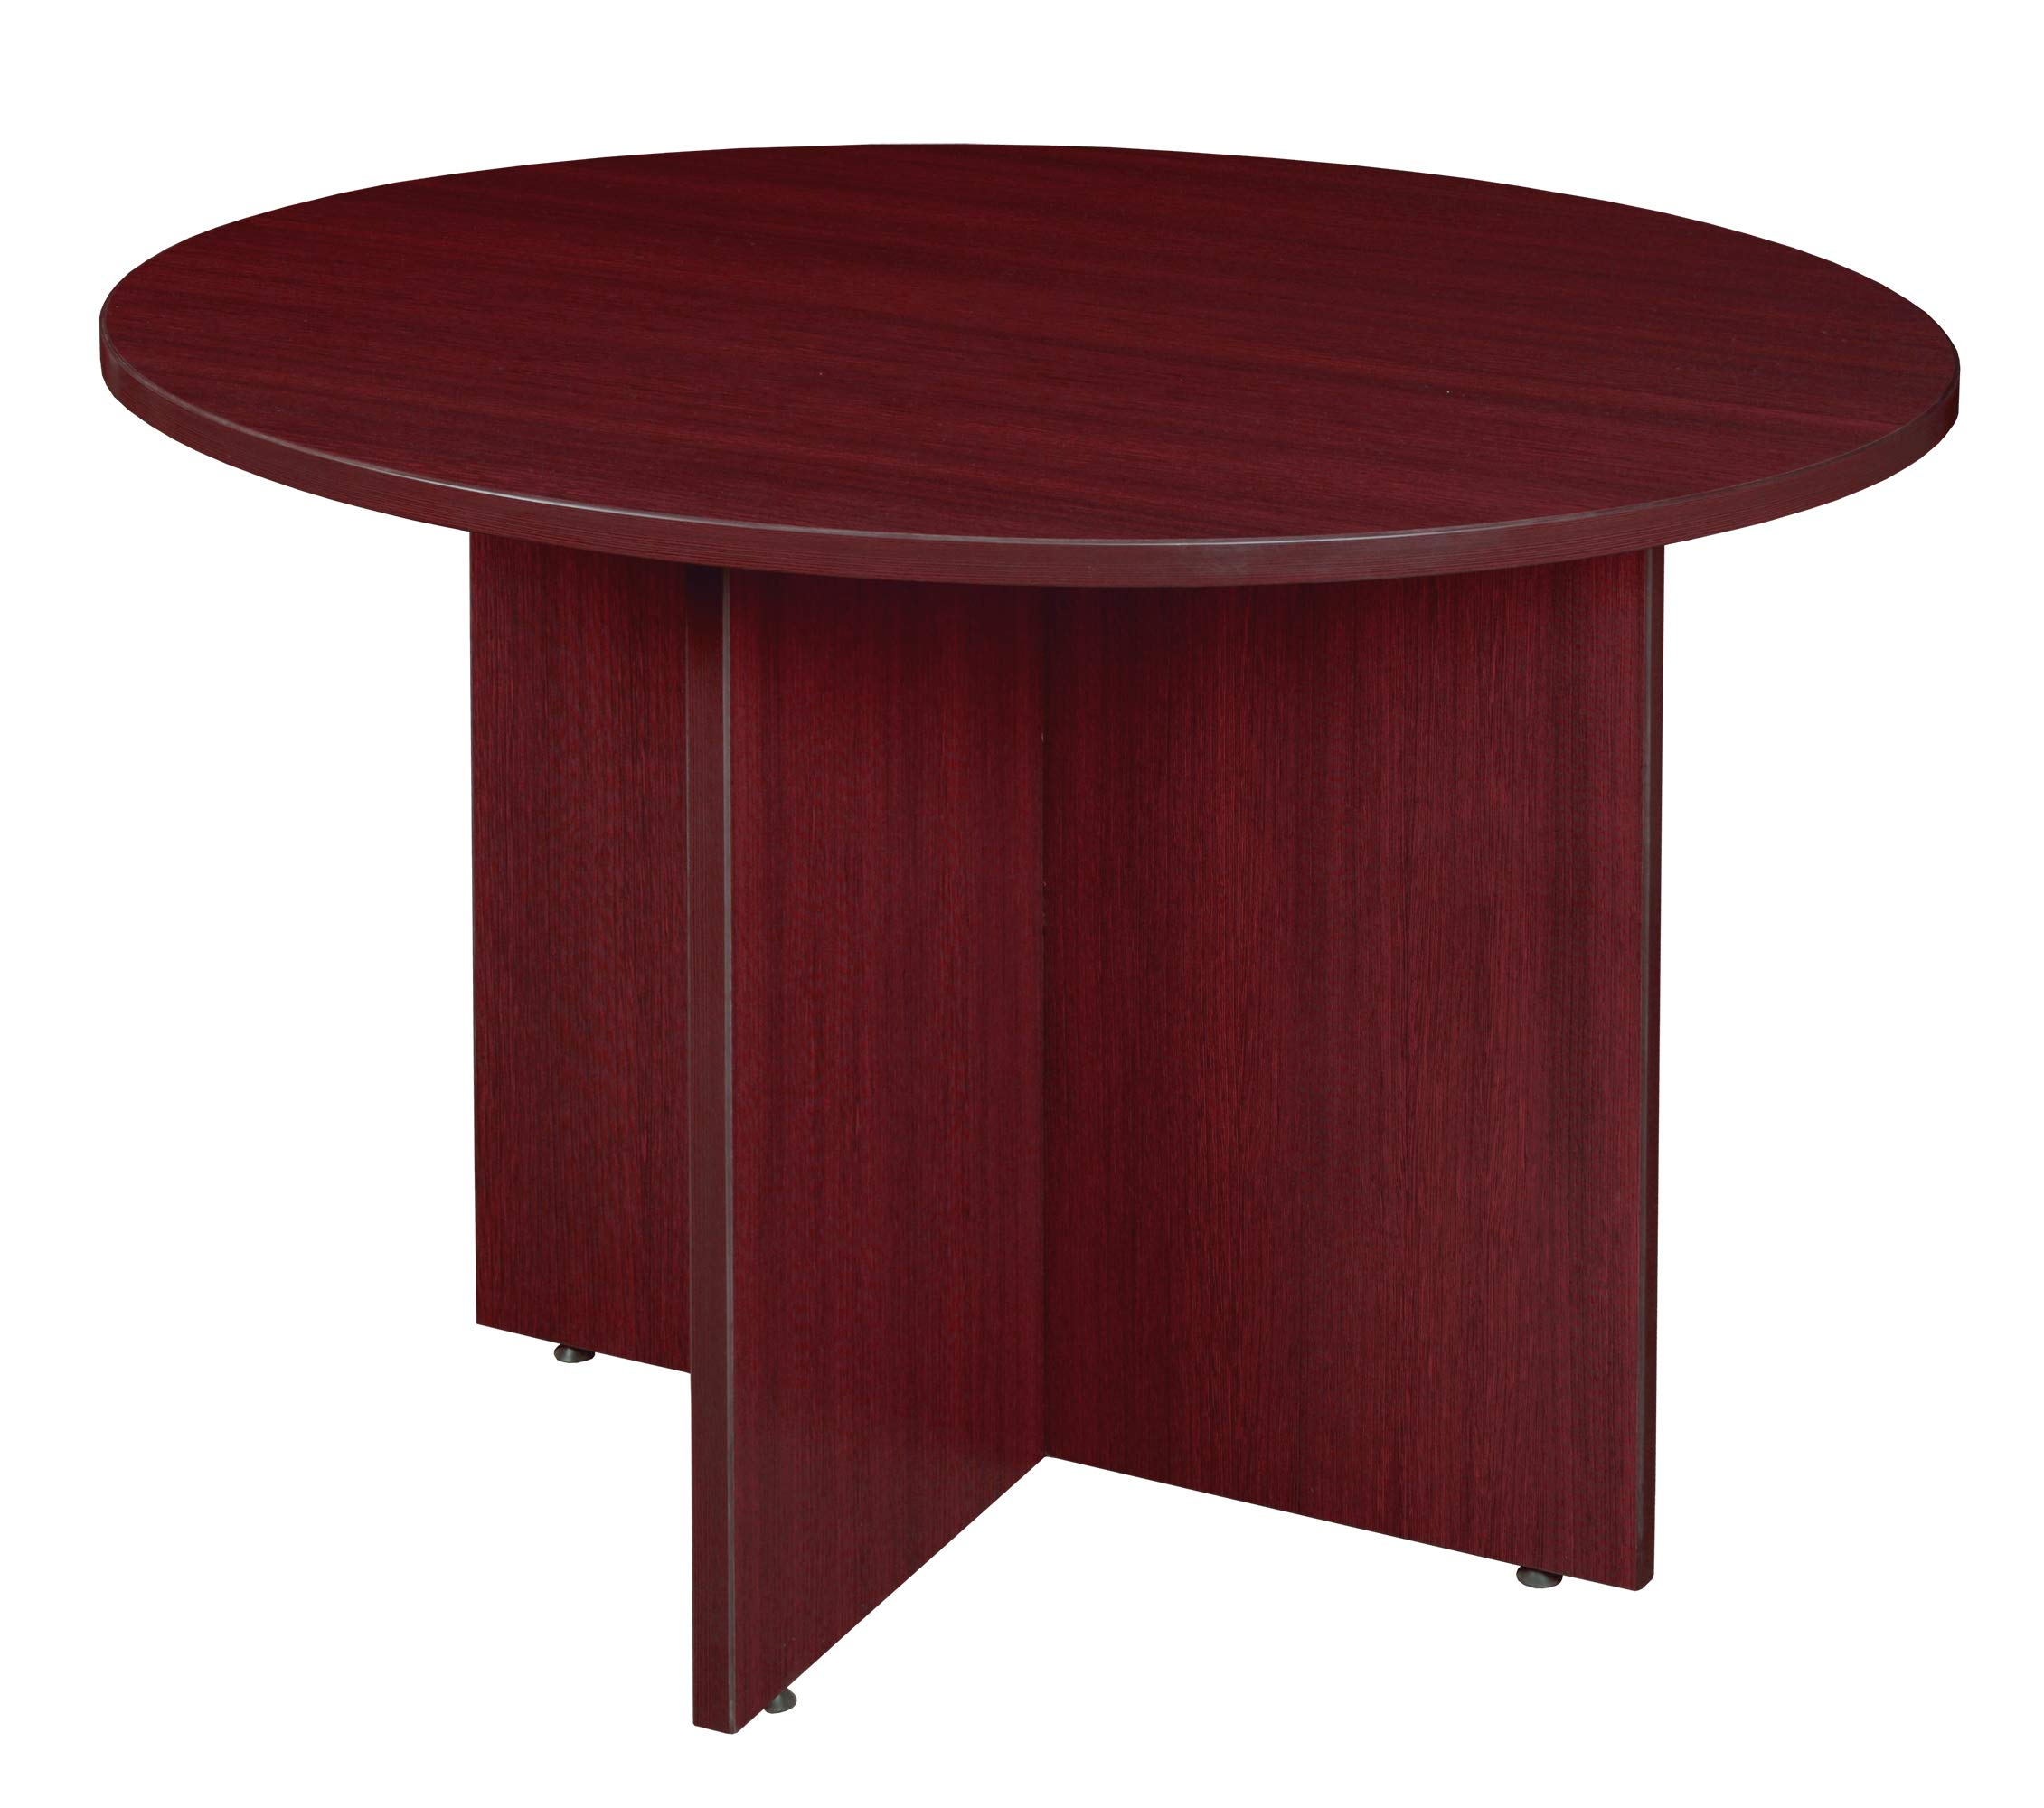 Regency LCTR42-MH Conference Table Legacy Round, 42-inch, Mahogany by Regency